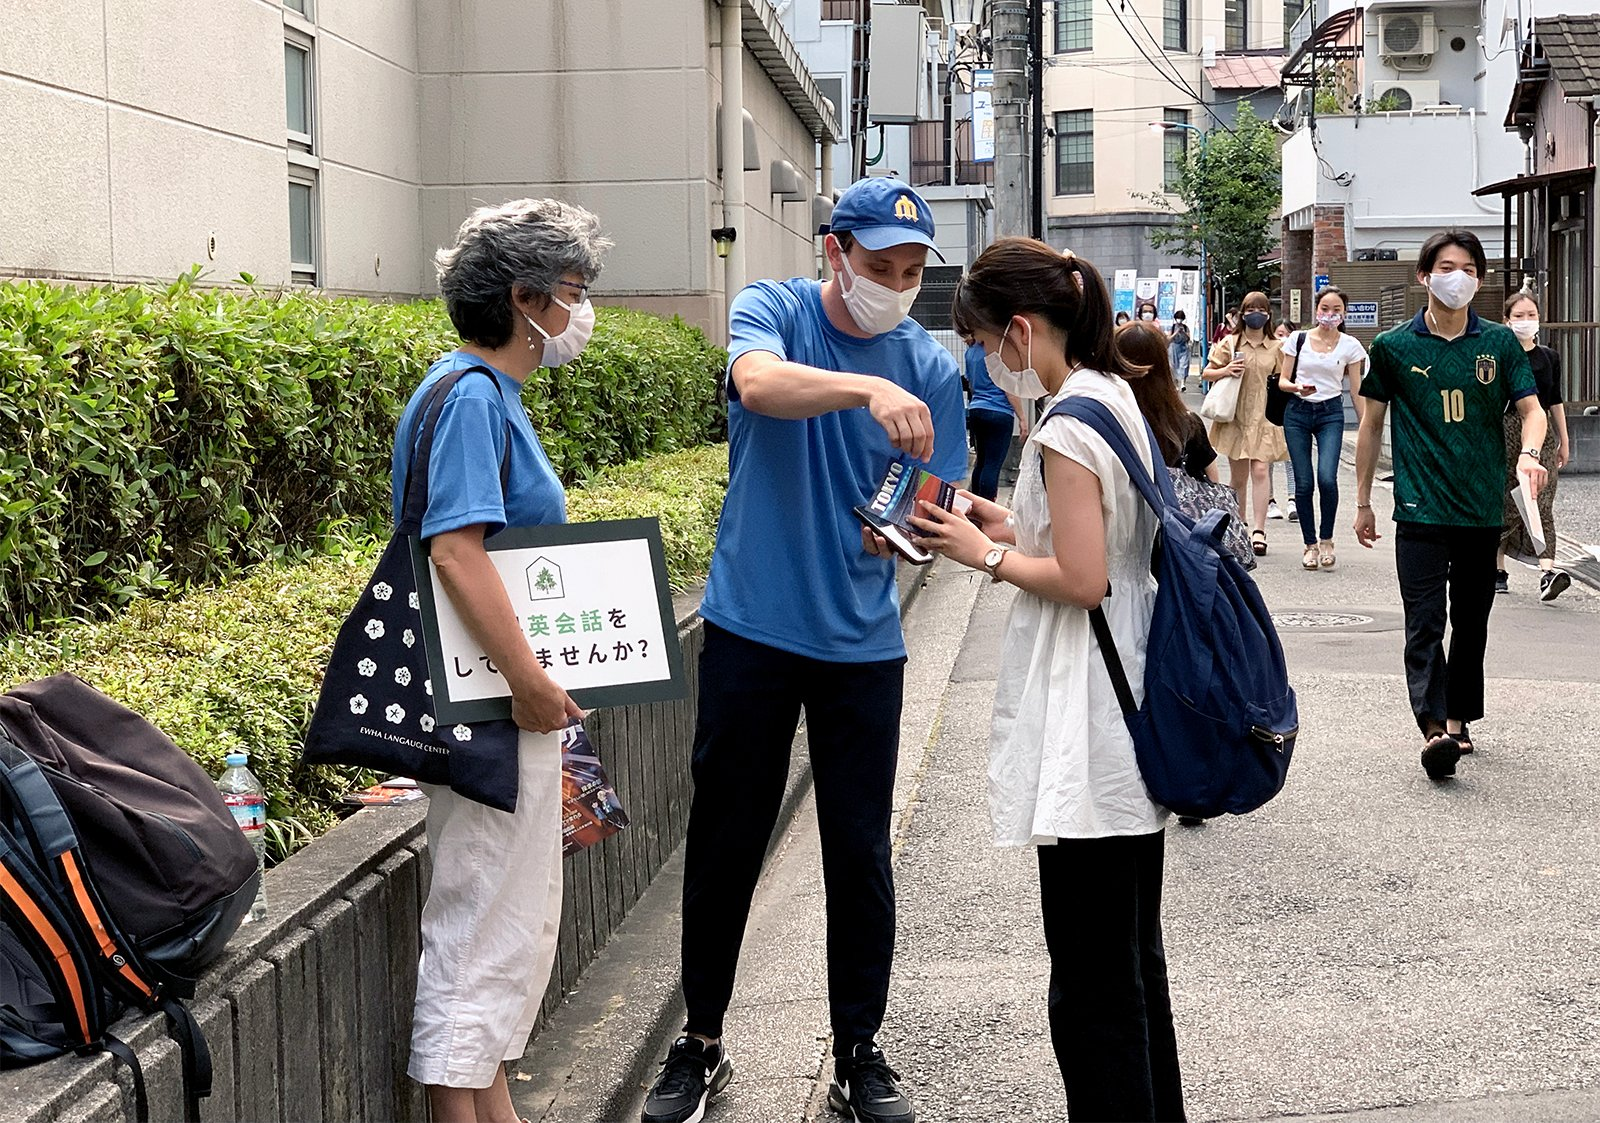 Pierce Hite, center, a Southern Baptist Convention International Mission Board missionary serving in Tokyo, Japan, explains a gospel tract to a woman, July 20, 2021. Hite and missionary Julie Bradford, left, took part in an outreach event called 5-Minute English that provides opportunities for people to practice conversational English on the street. Photo courtesy of the IMB